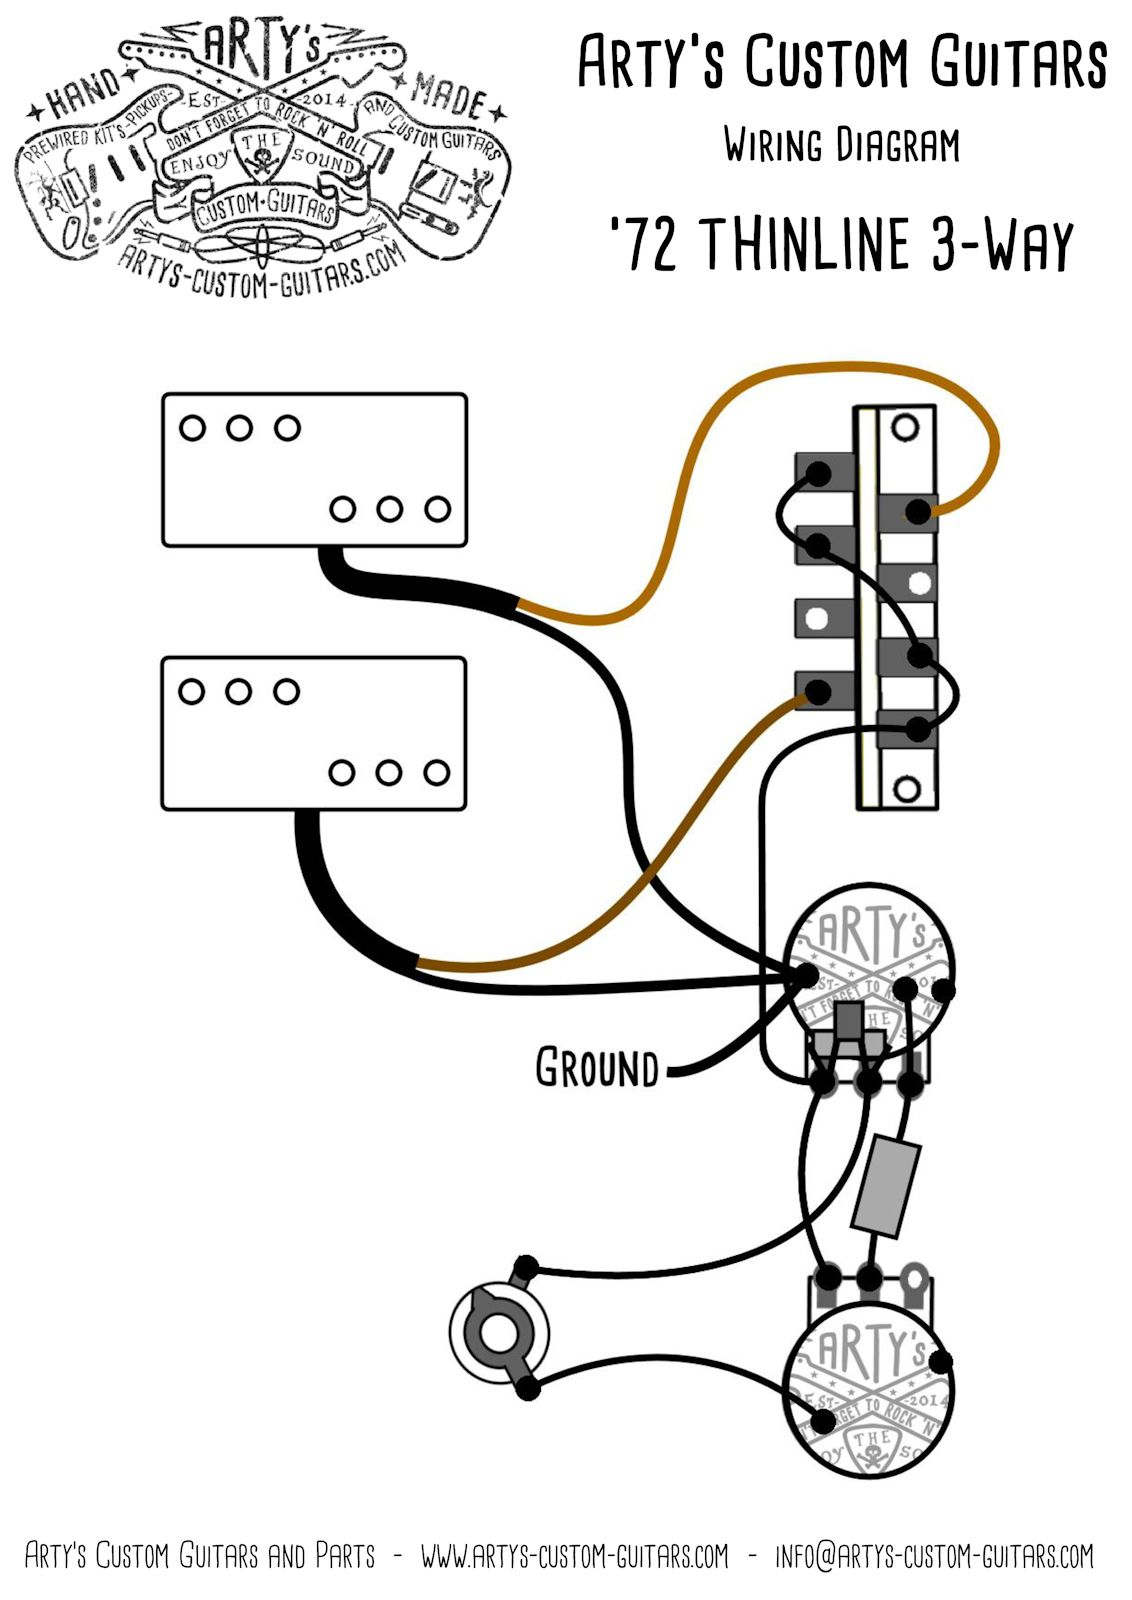 3 way switching artys custom guitars telecaster standard wiring kit pre wiredartys custom guitars telecaster standard wiring kit pre [ 1132 x 1600 Pixel ]